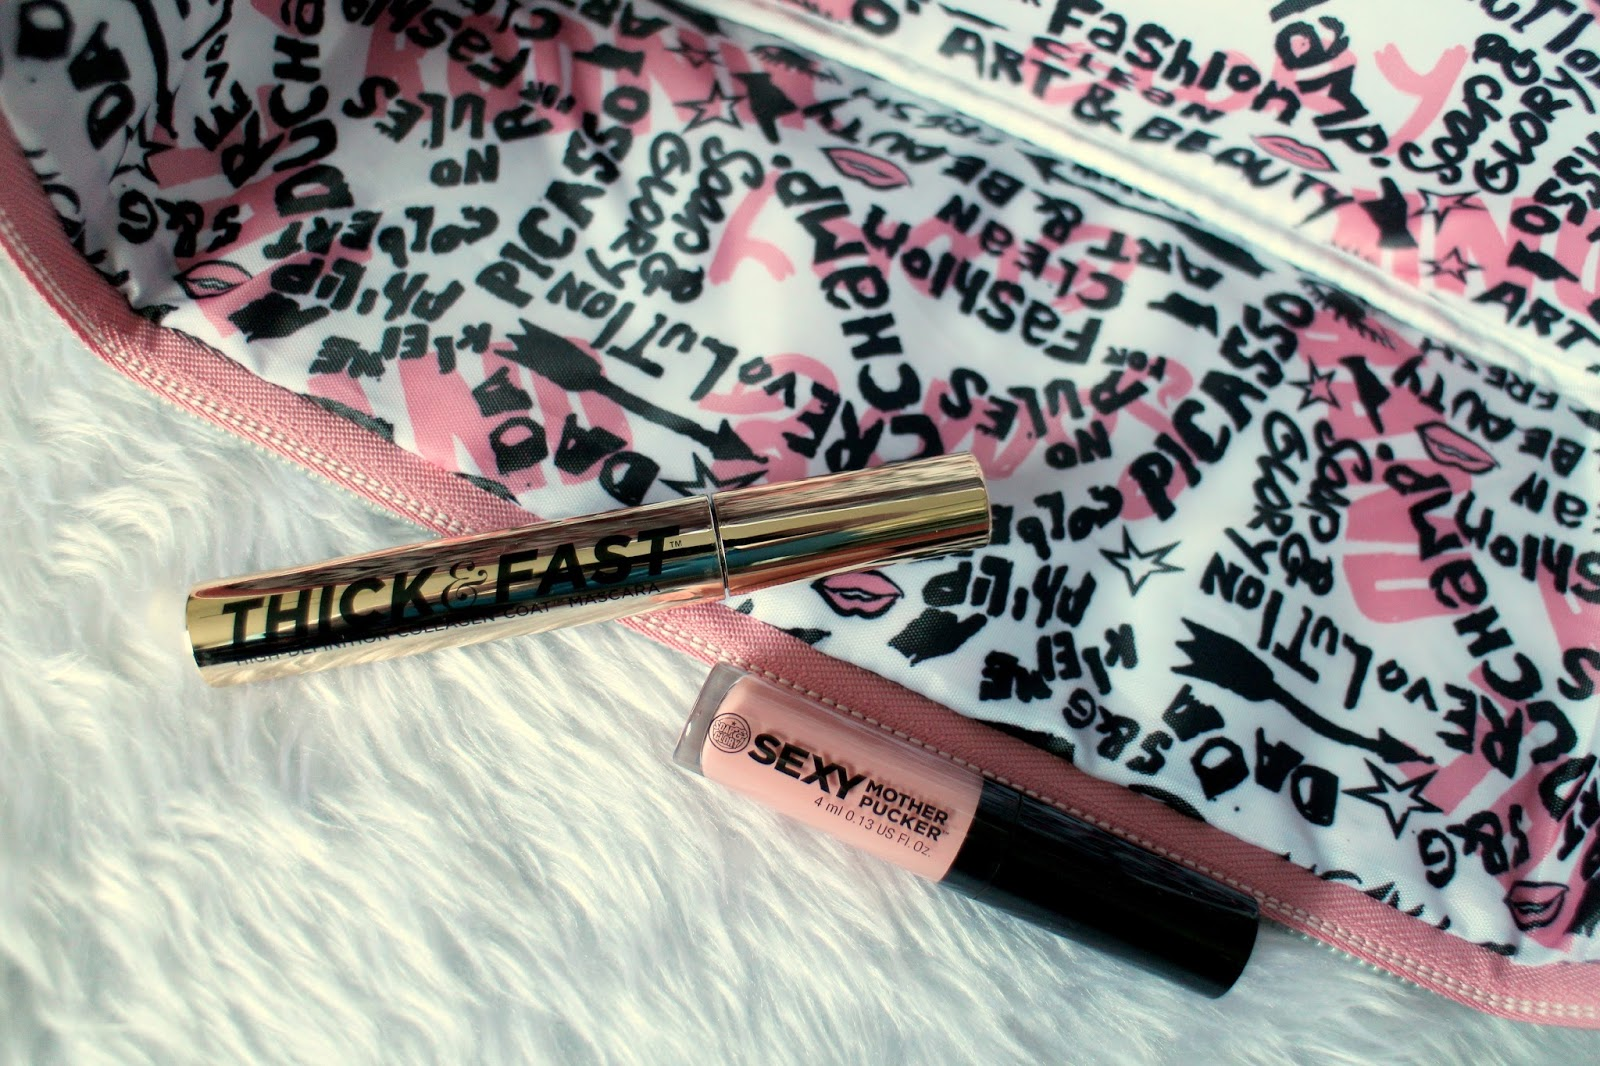 Soap & Glory Make-Up Review